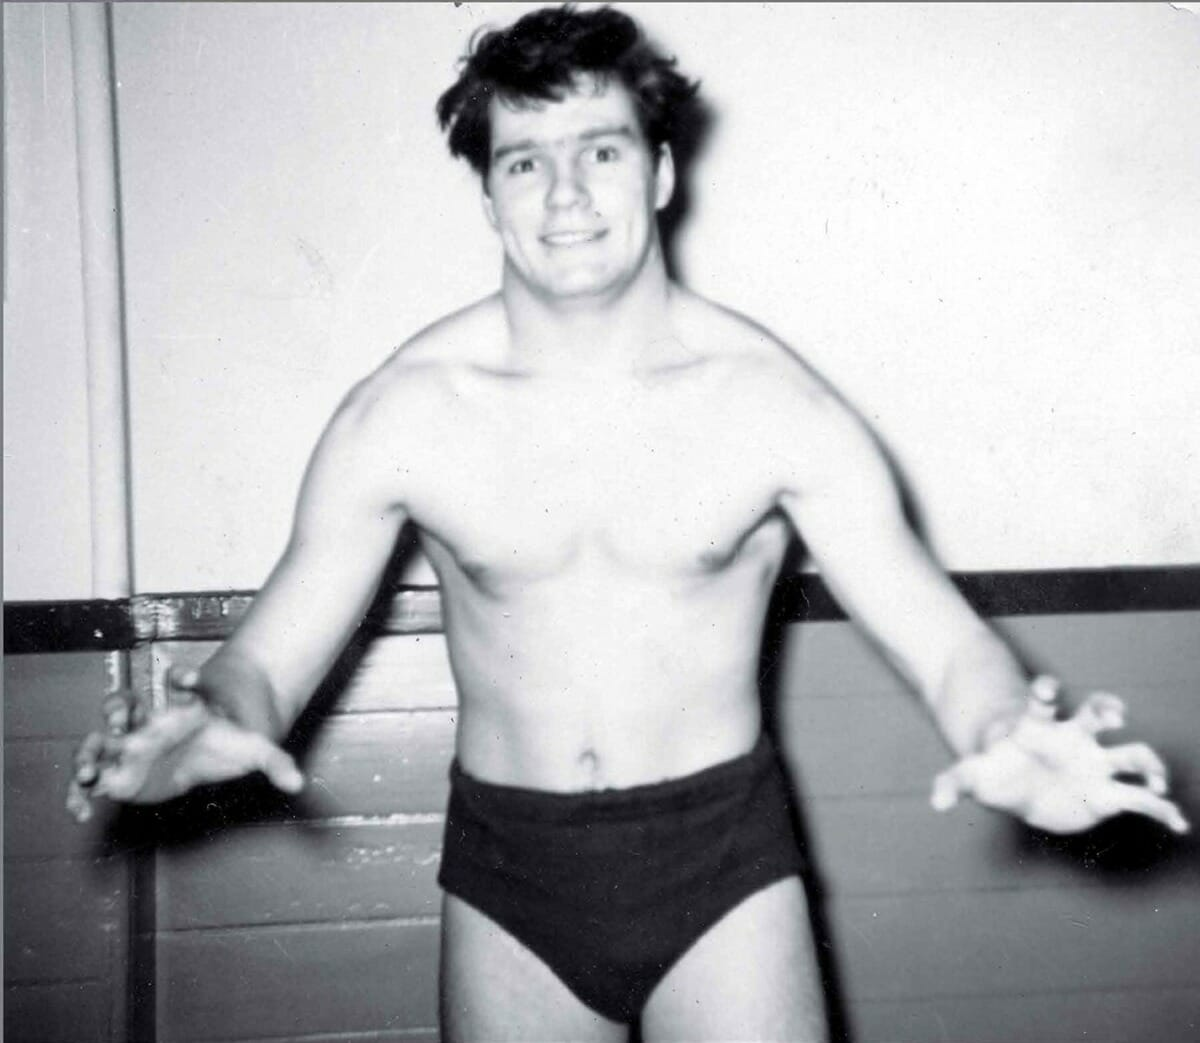 The earliest Pat Patterson wrestling picture on record. [Source: Accepted: How the First Gay Superstar Changed WWE]